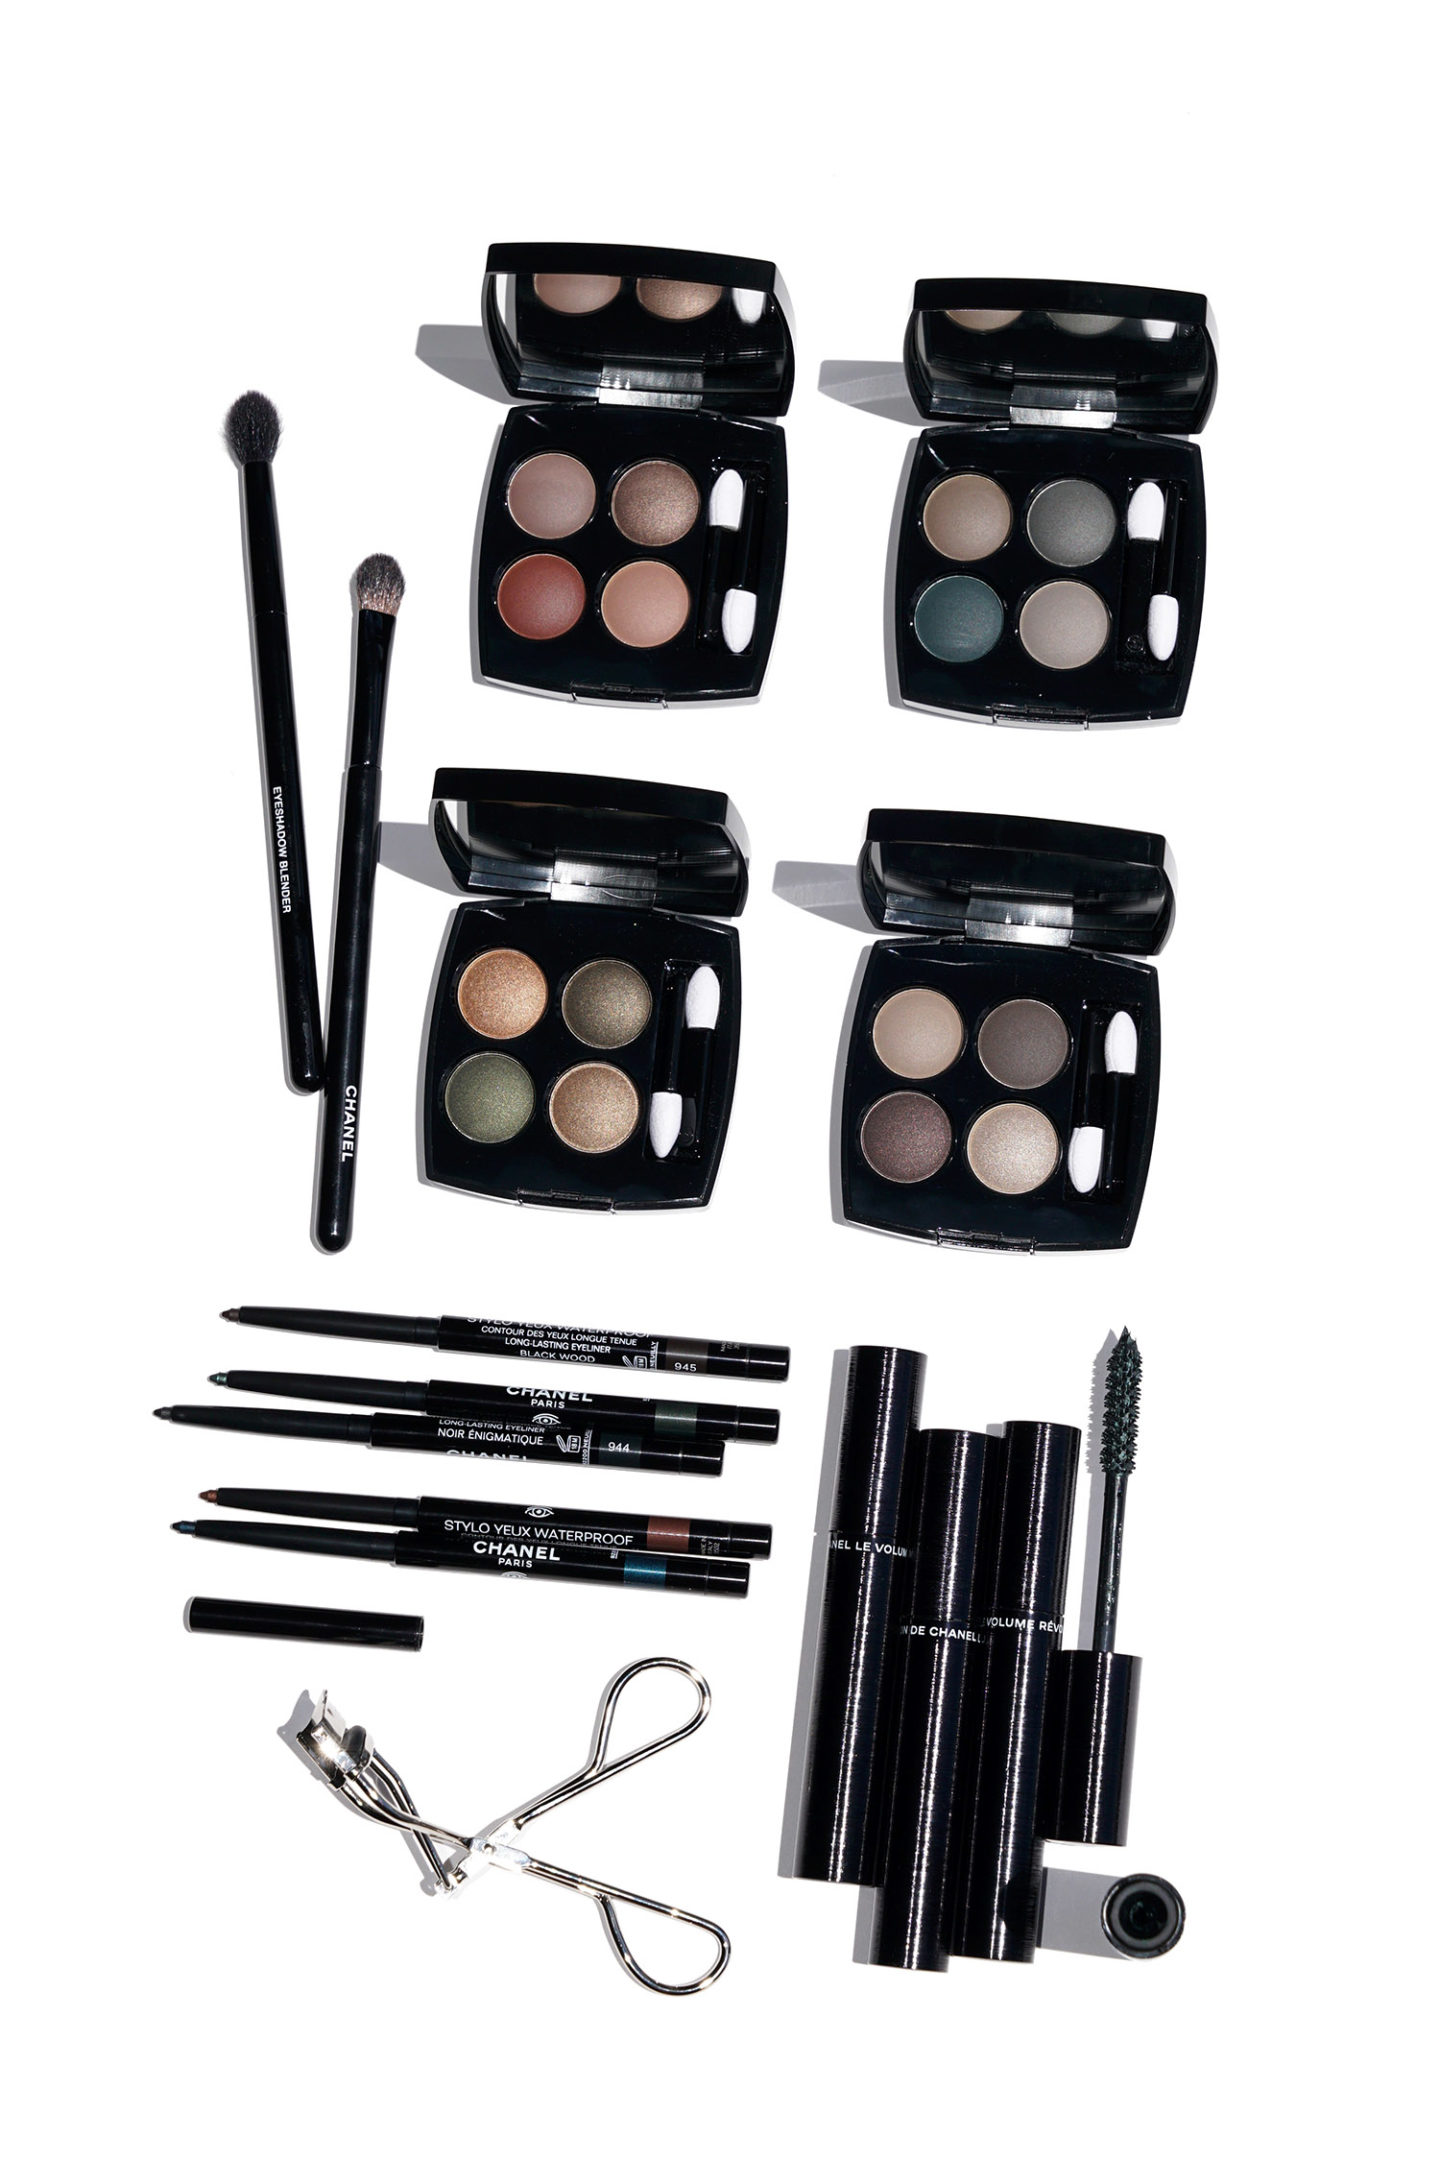 Chanel Beauty The New Eye Collection Review and Swatches | The Beauty Look Book